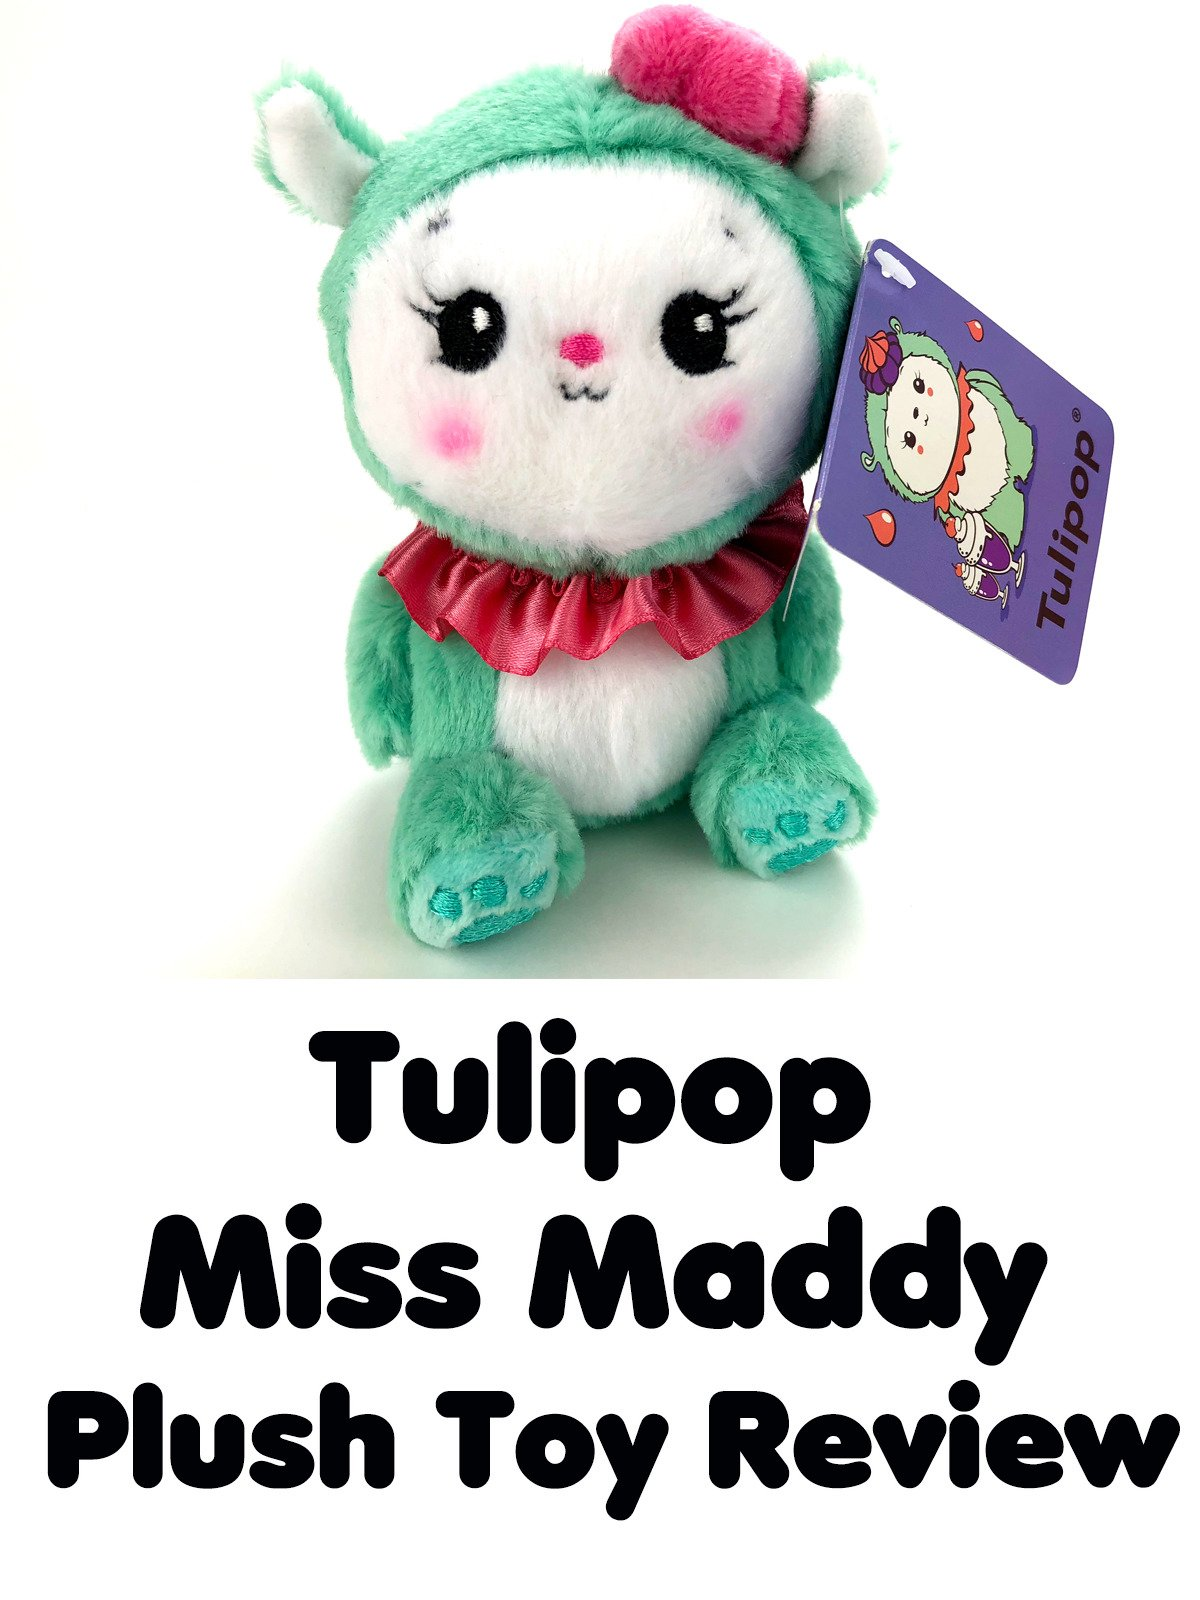 Review: Tulipop Miss Maddy Plush Toy Review on Amazon Prime Video UK